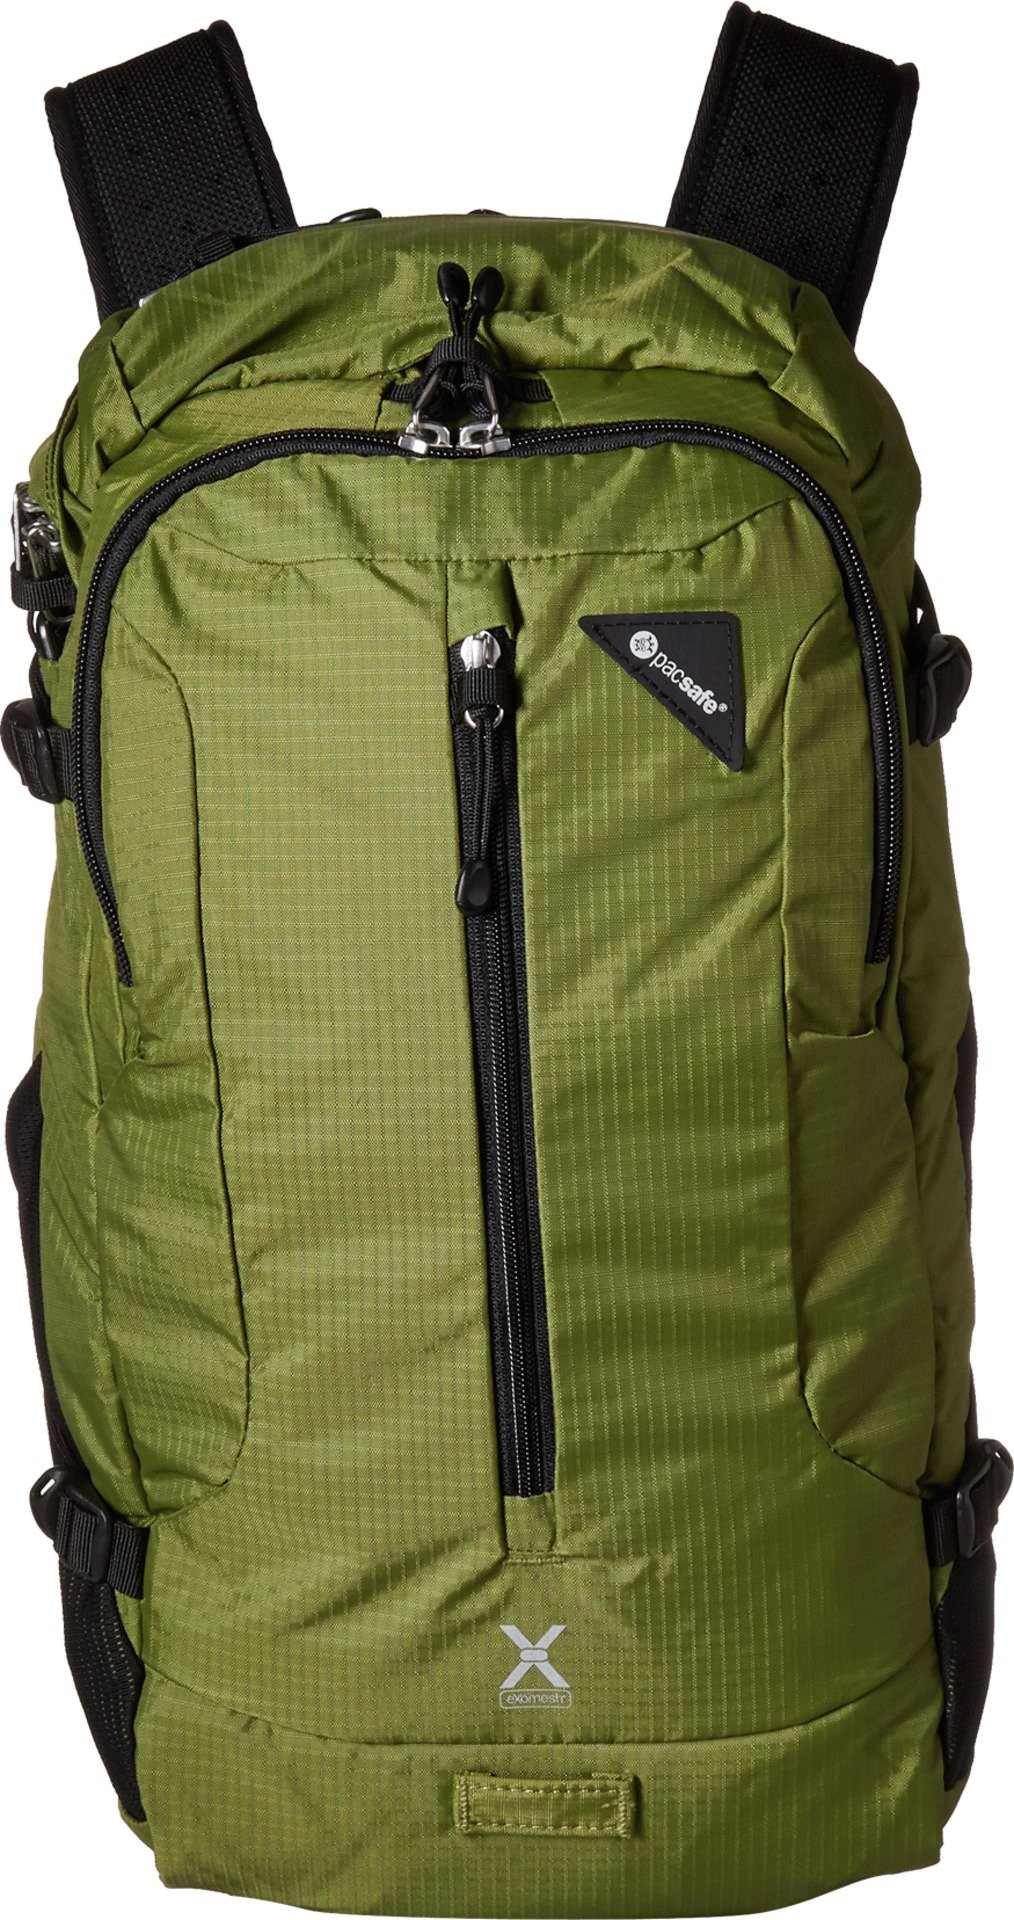 Pacsafe Venturesafe X22 Anti-Theft Adventure Backpack (Olive Green)